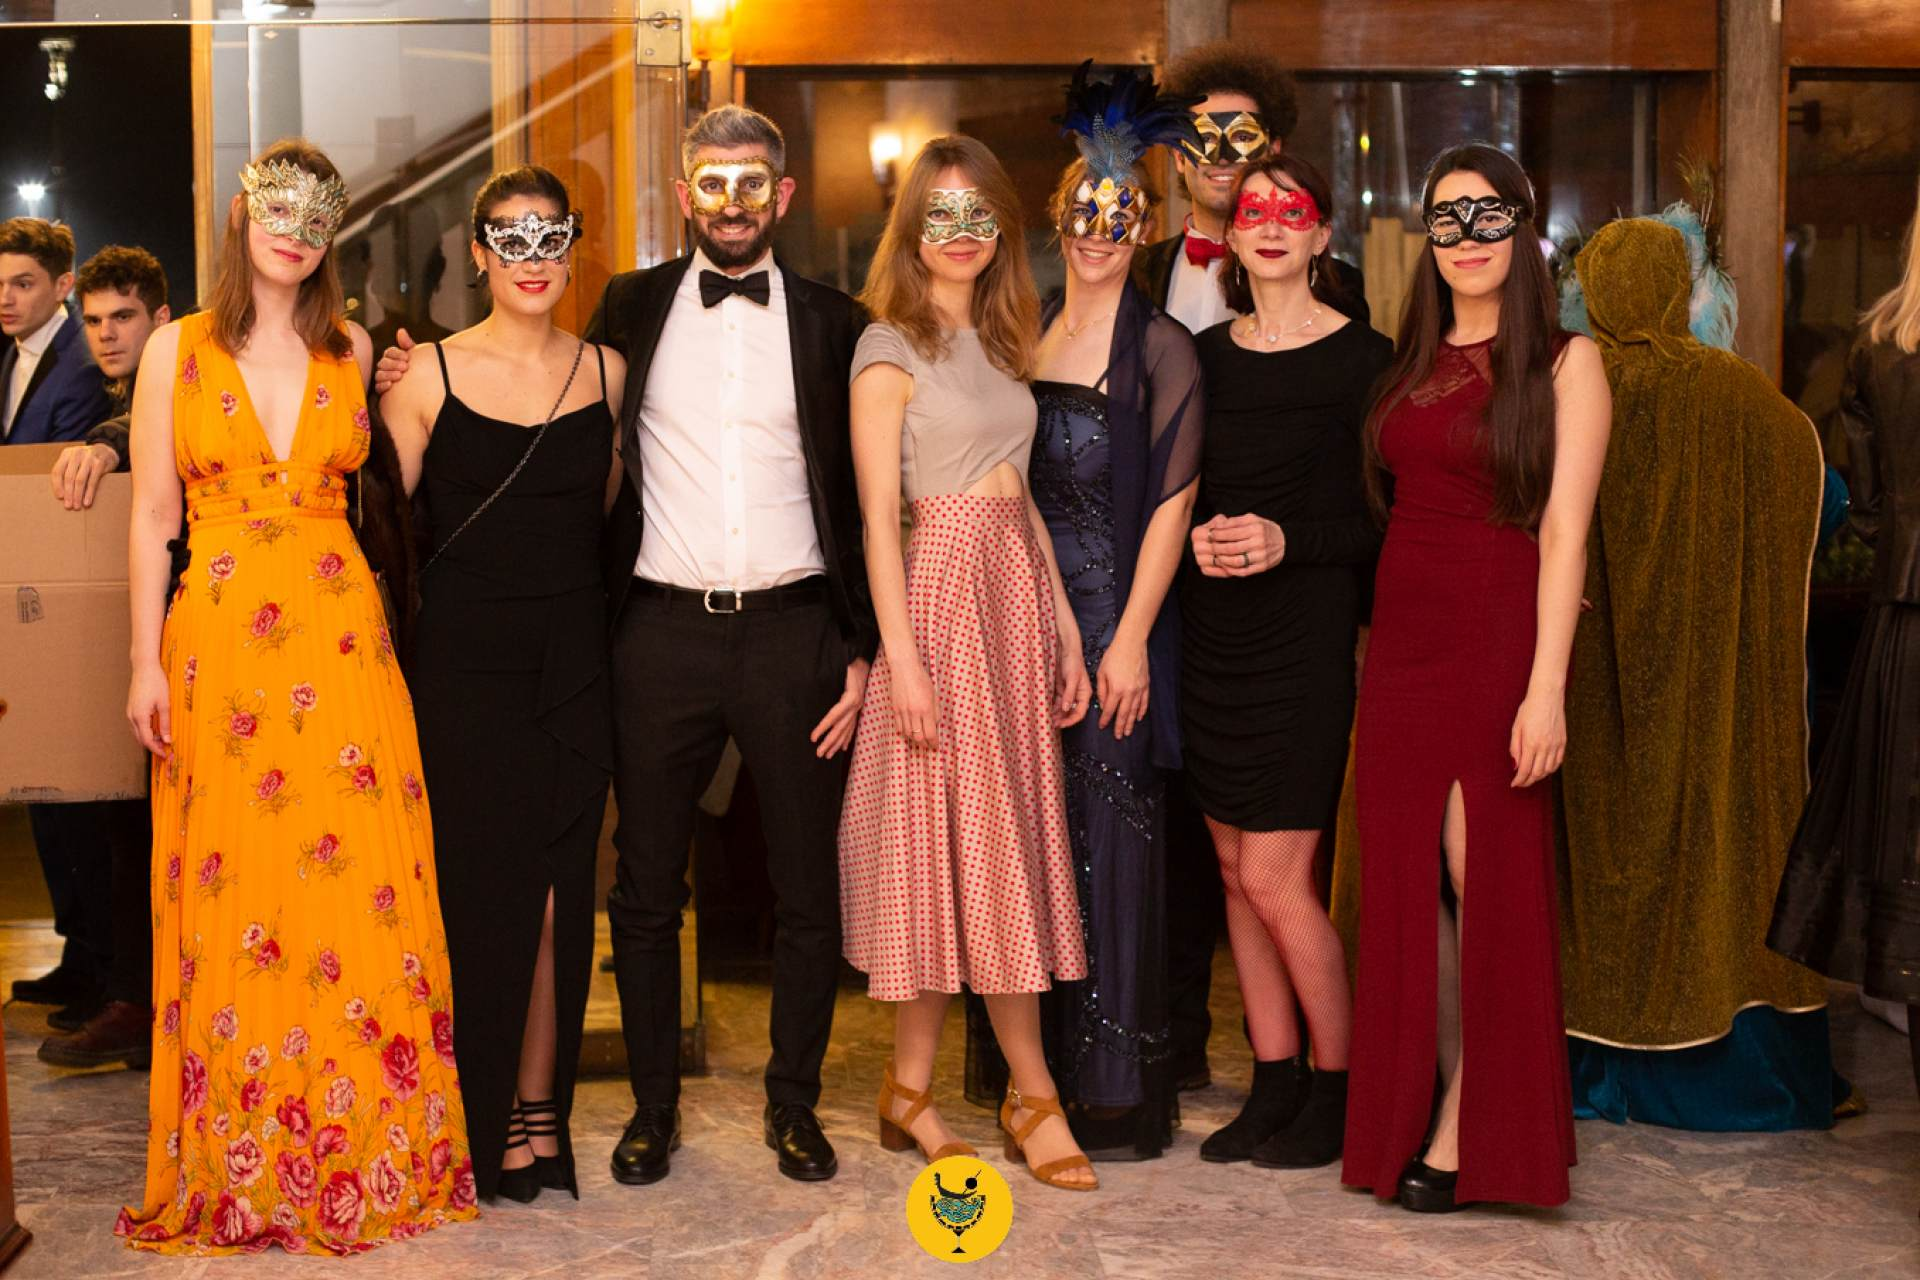 Grand Venetian Ball at Contarini dalla Porta di Ferro